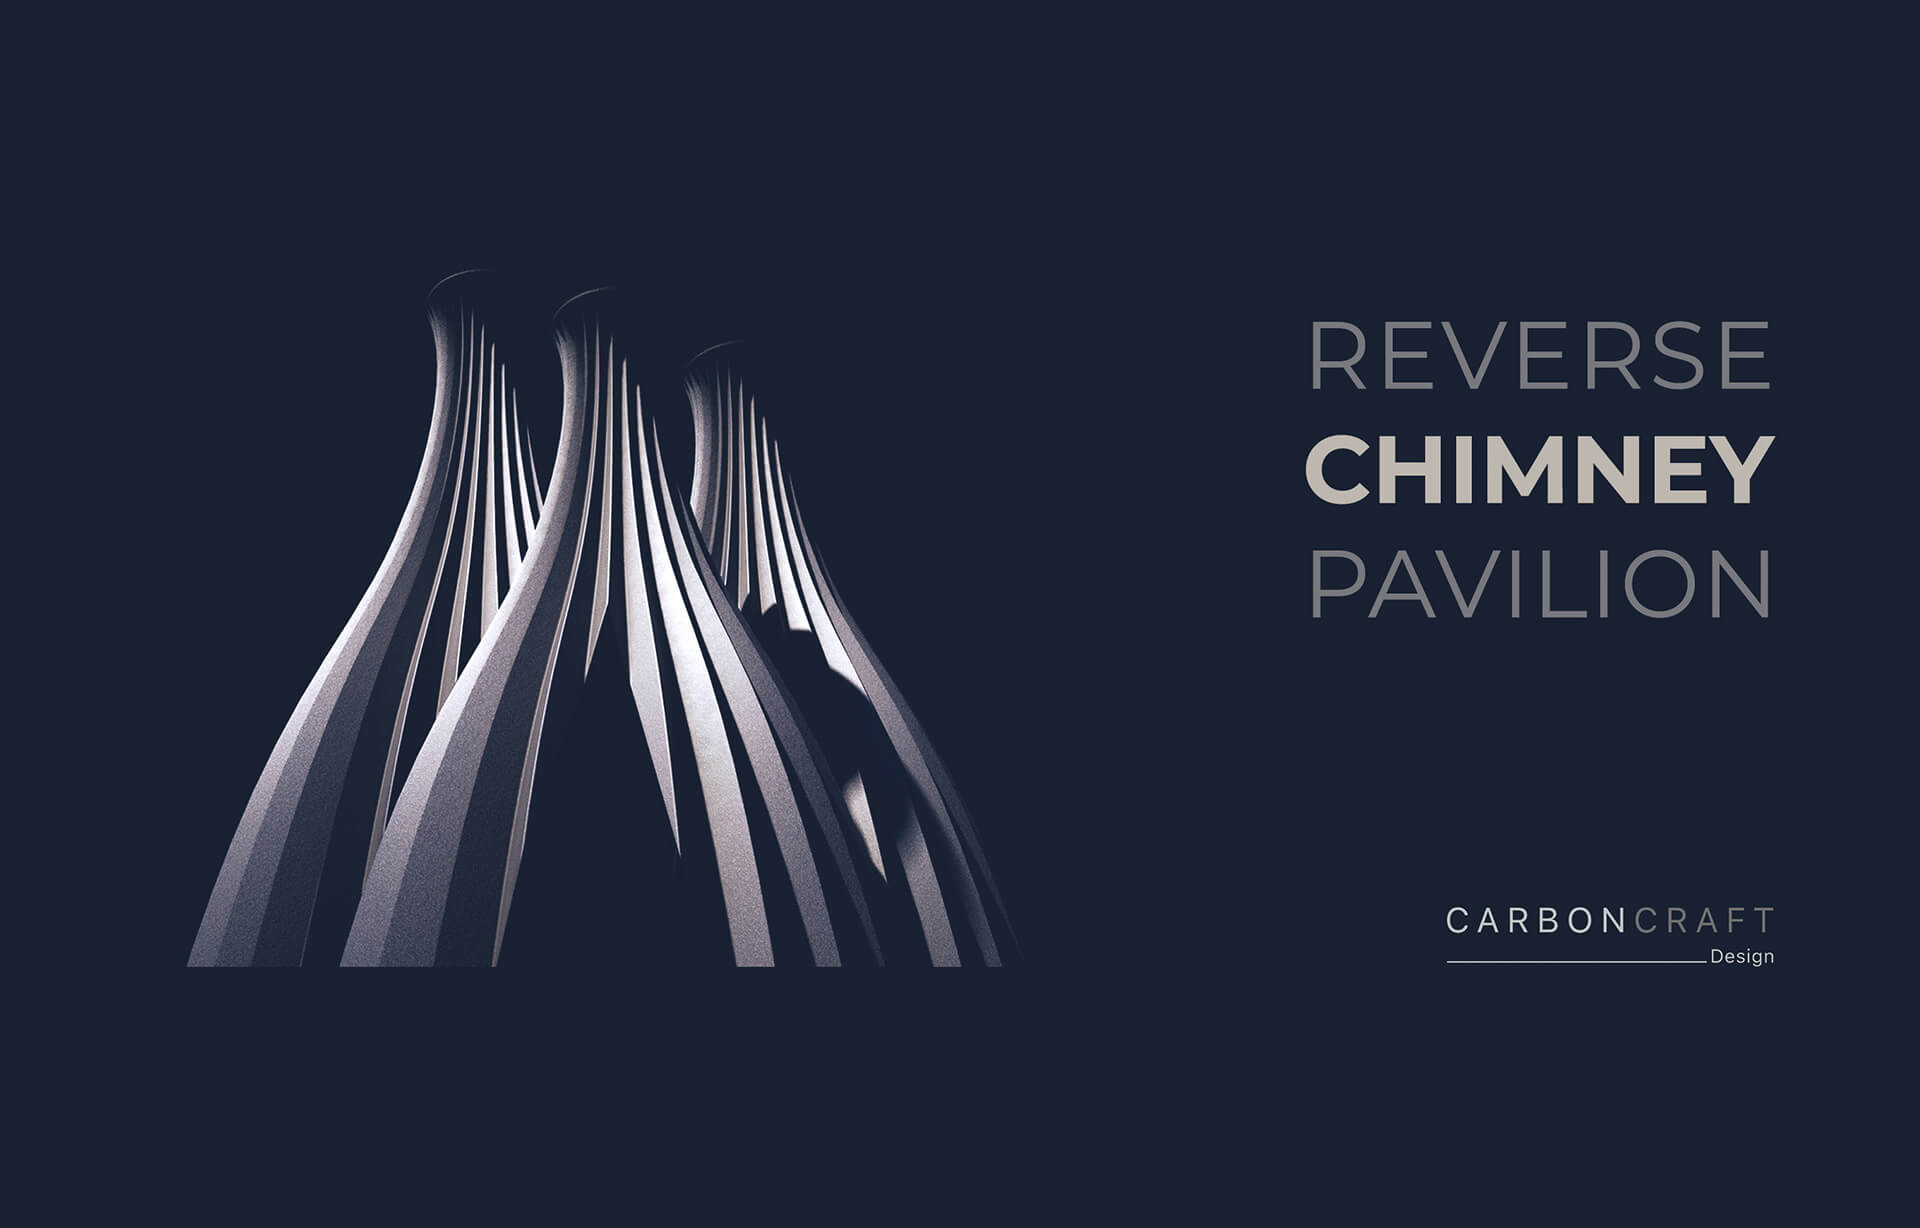 Conceptual form of Reverse Chimney Pavilion | Reverse Chimney Pavilion by Carbon Craft Design | STIRworld